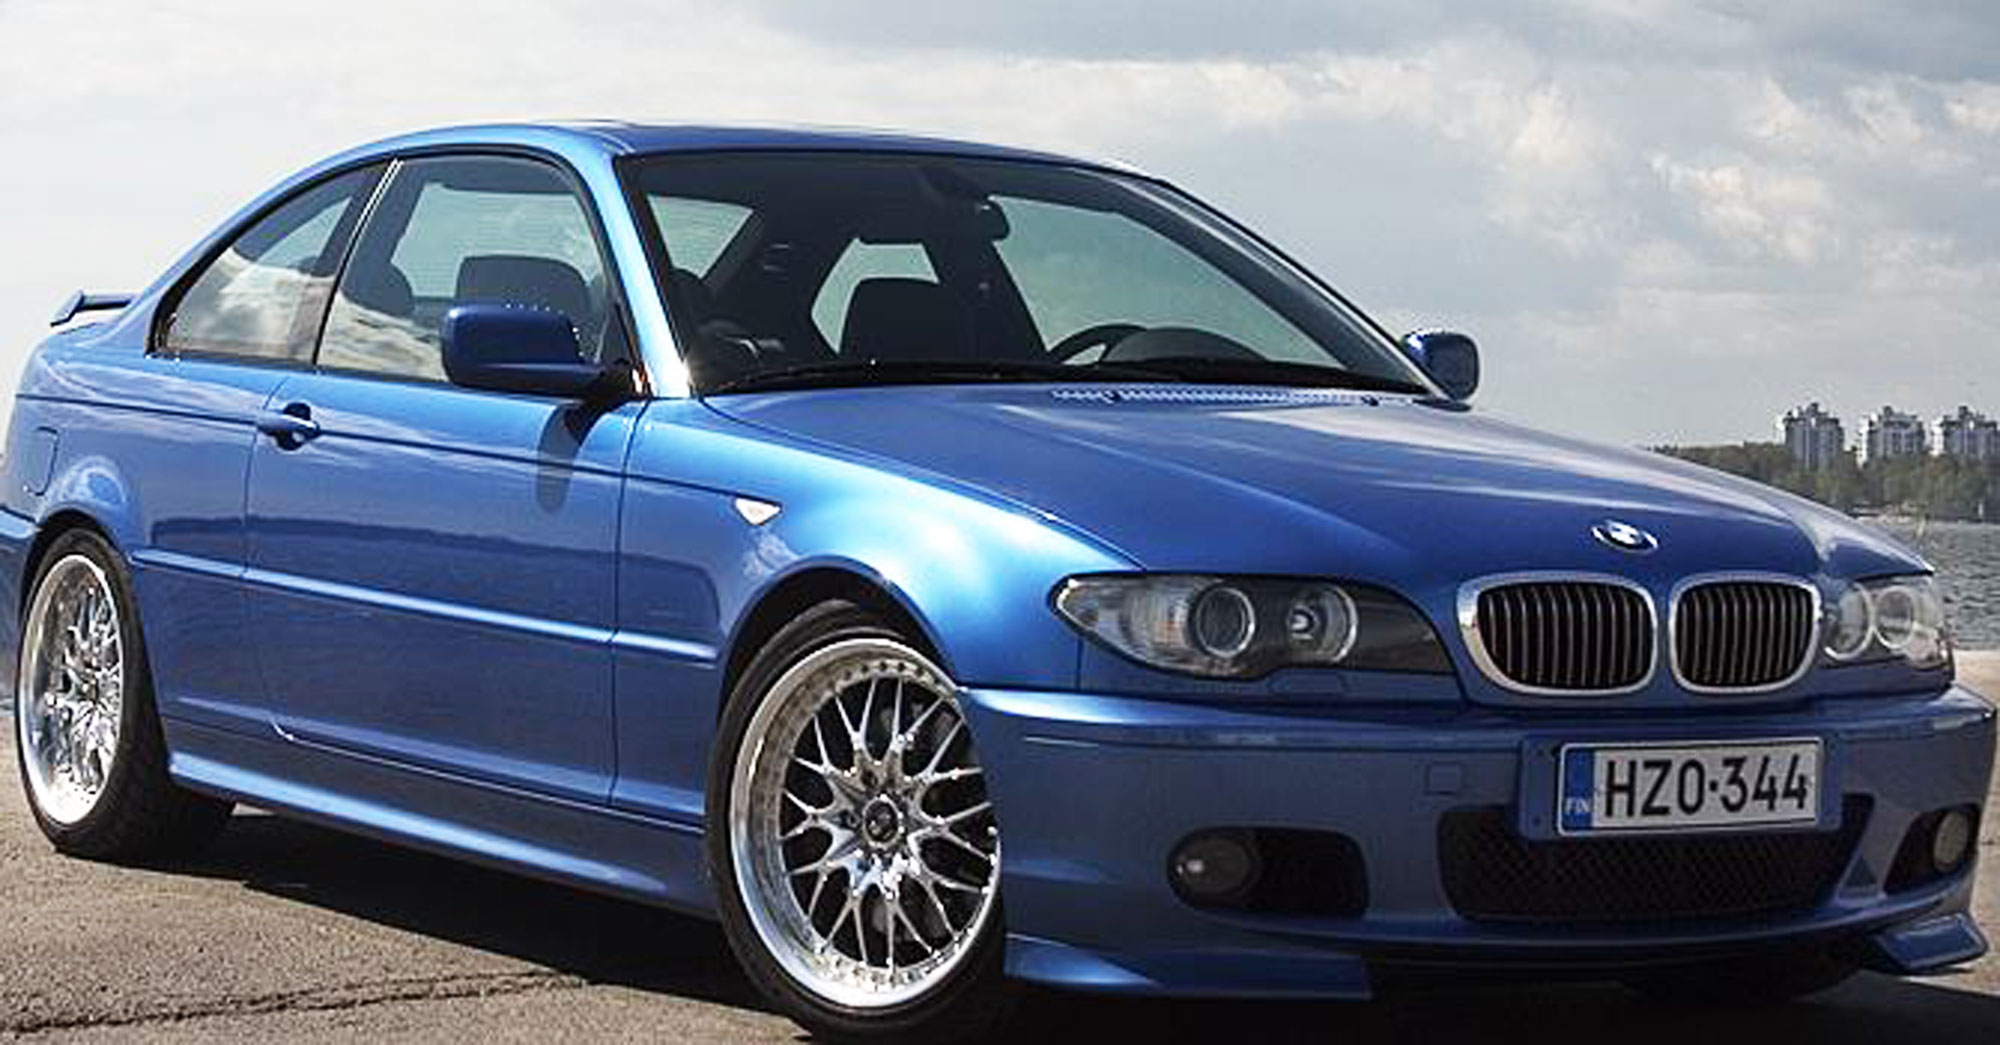 Bmw E46 Club Sport - Work Rezax Wheels - Screw Them All - Blog